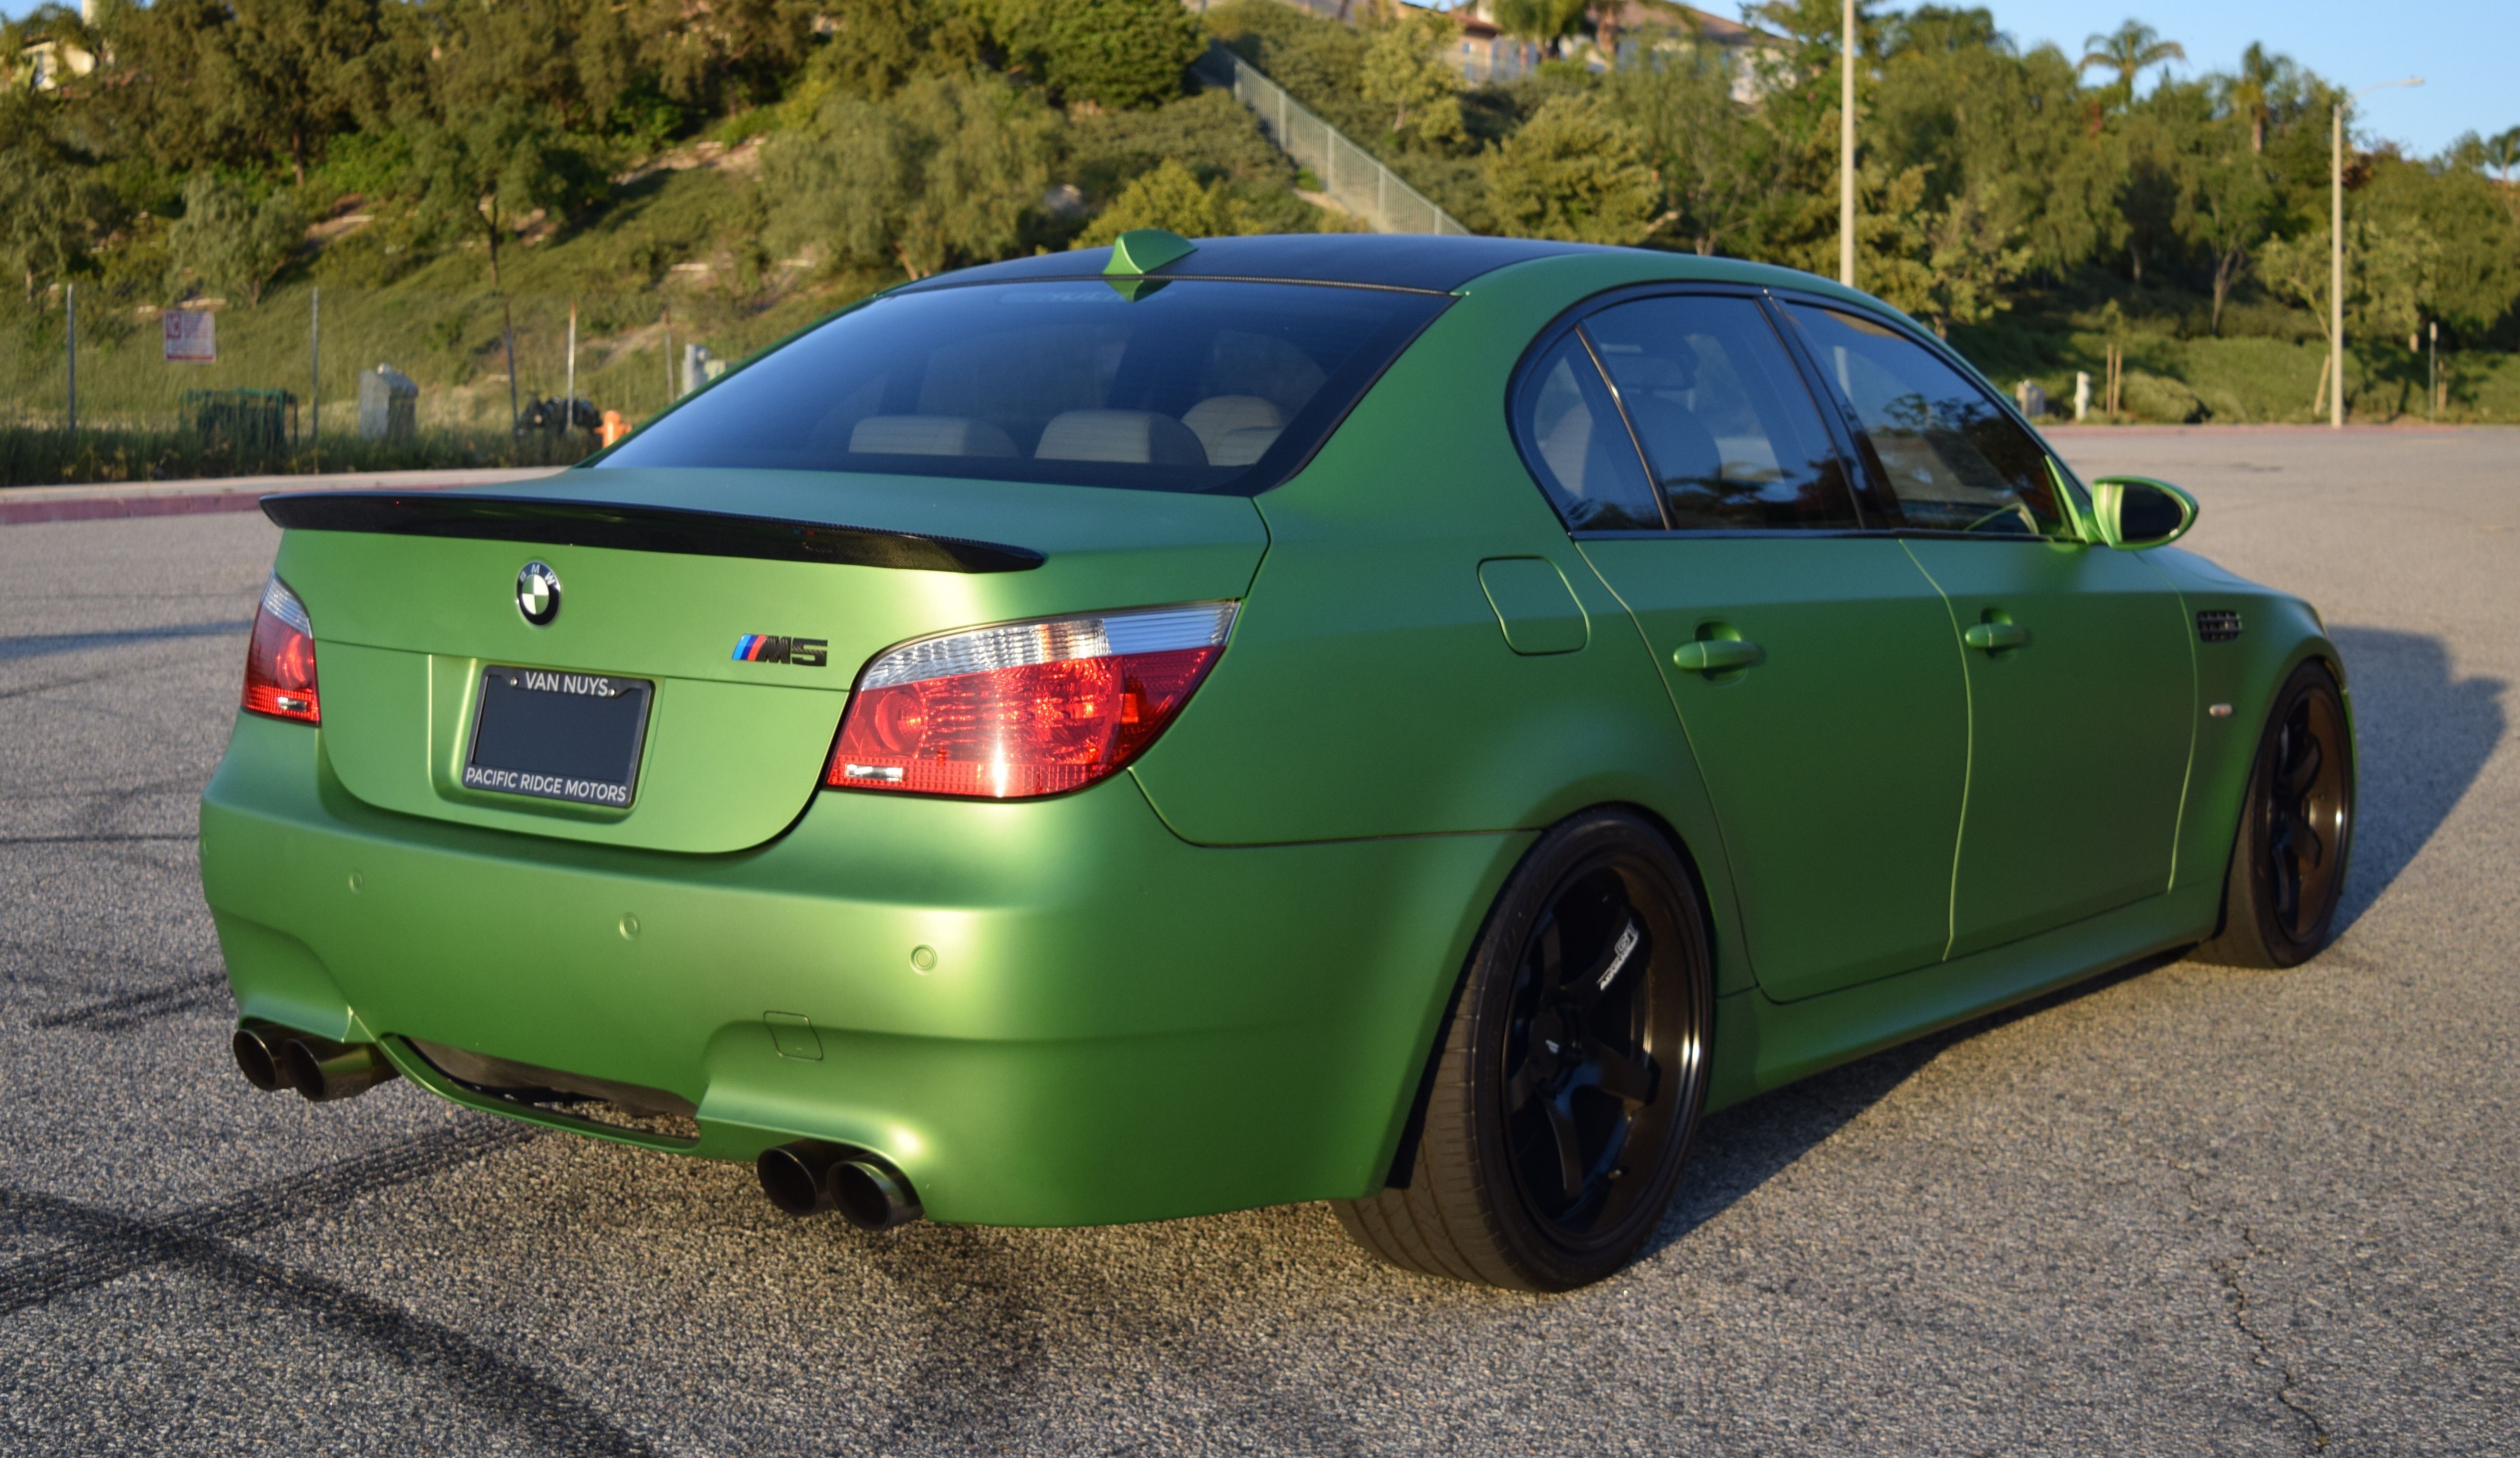 E60 Bmw M5 With 19 Inch Advan Wheels With Images Bmw Bmw M5 Car